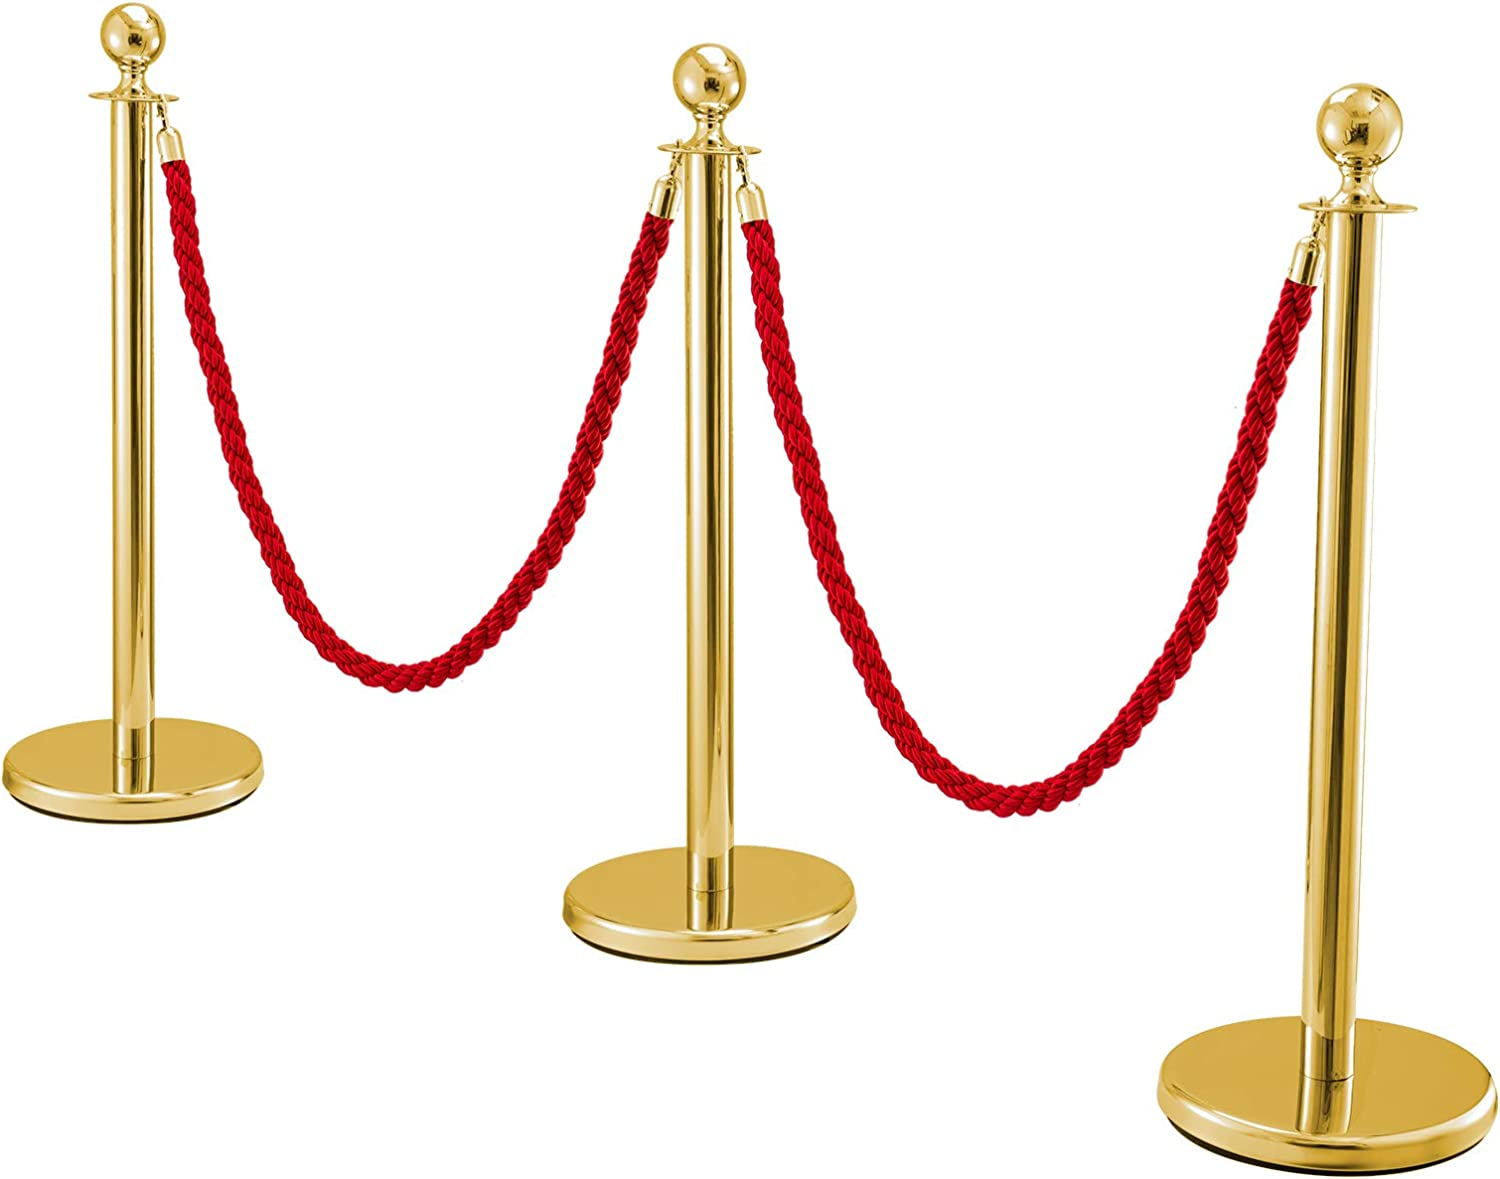 FlowerW Set of 3 Retractable Silver Round Top Stanchion Post Queue Crowd Control Barrier Posts Line Pole with 1.5M Red 2 Twine Rope